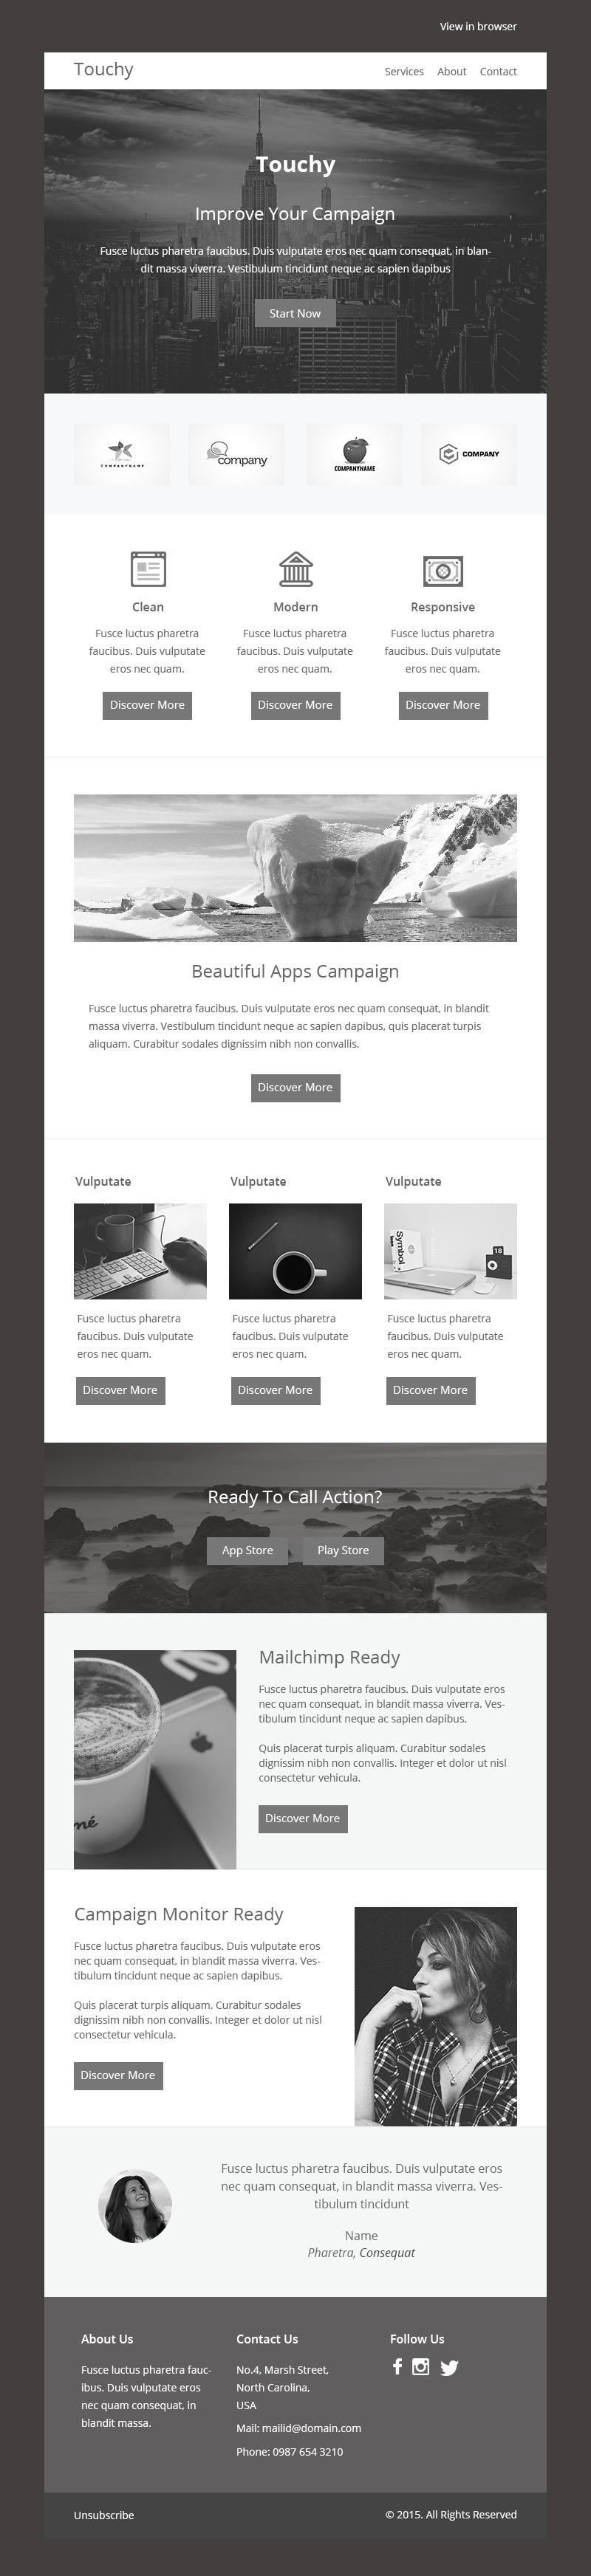 TOUCHY-PSD RESPONSIVE EMAIL TEMPLATE by pennyblack on ...